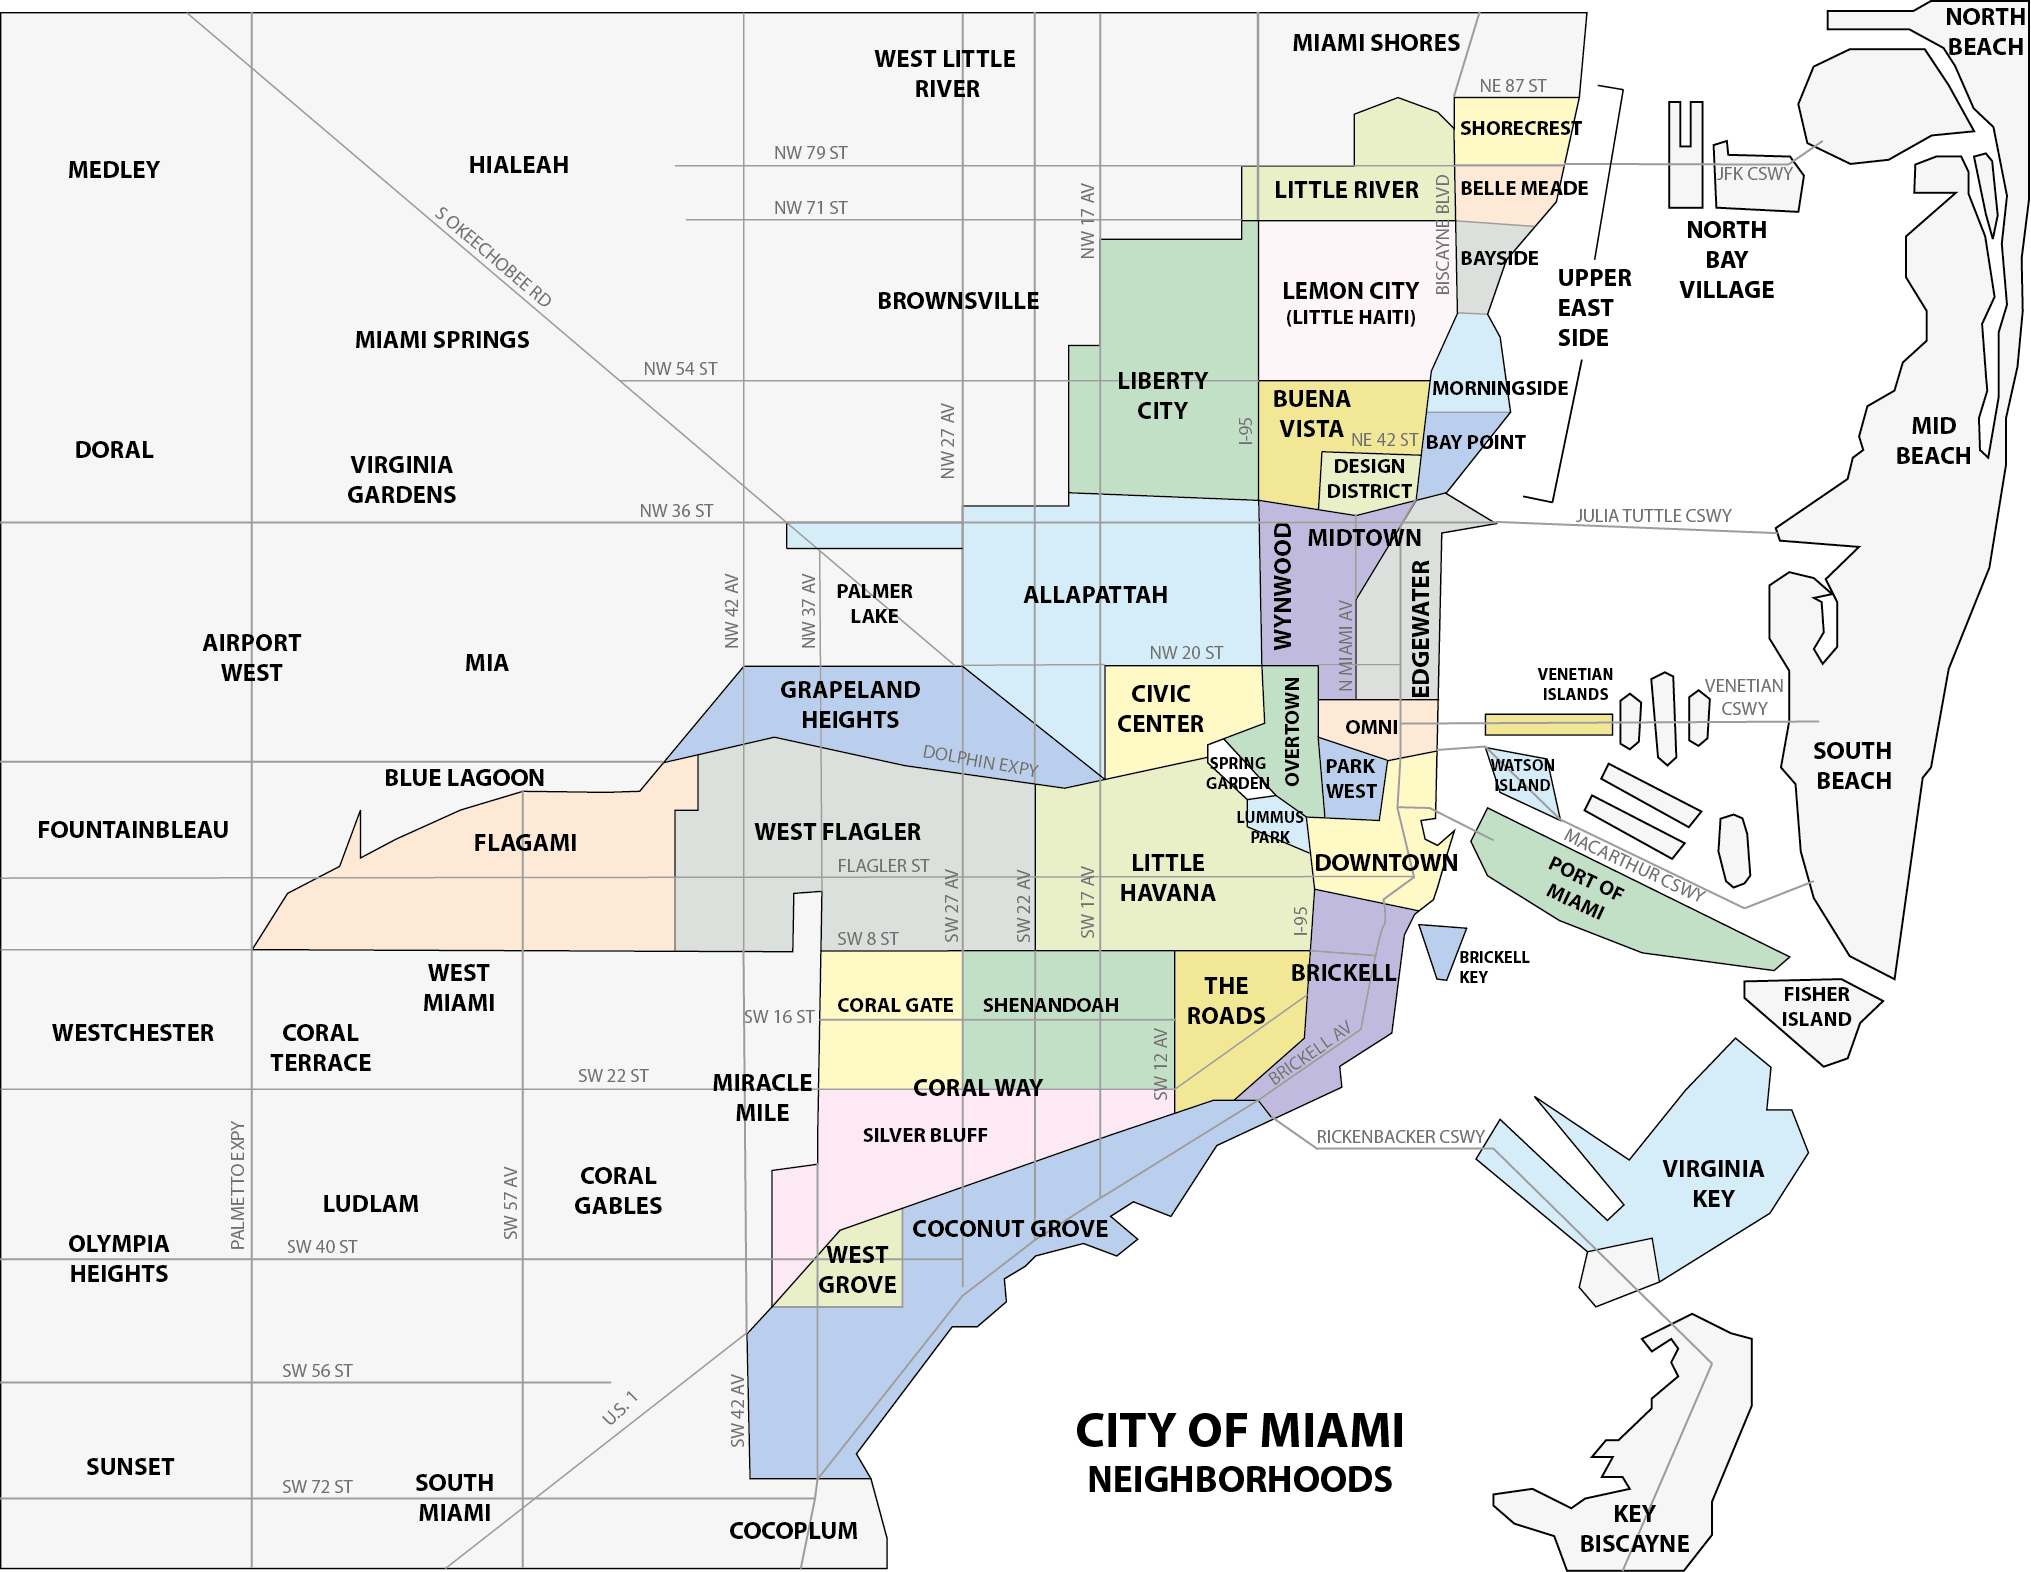 Coconut Grove Florida Map.Coconut Grove Neighborhood Of The City Of Miami Miami Florida